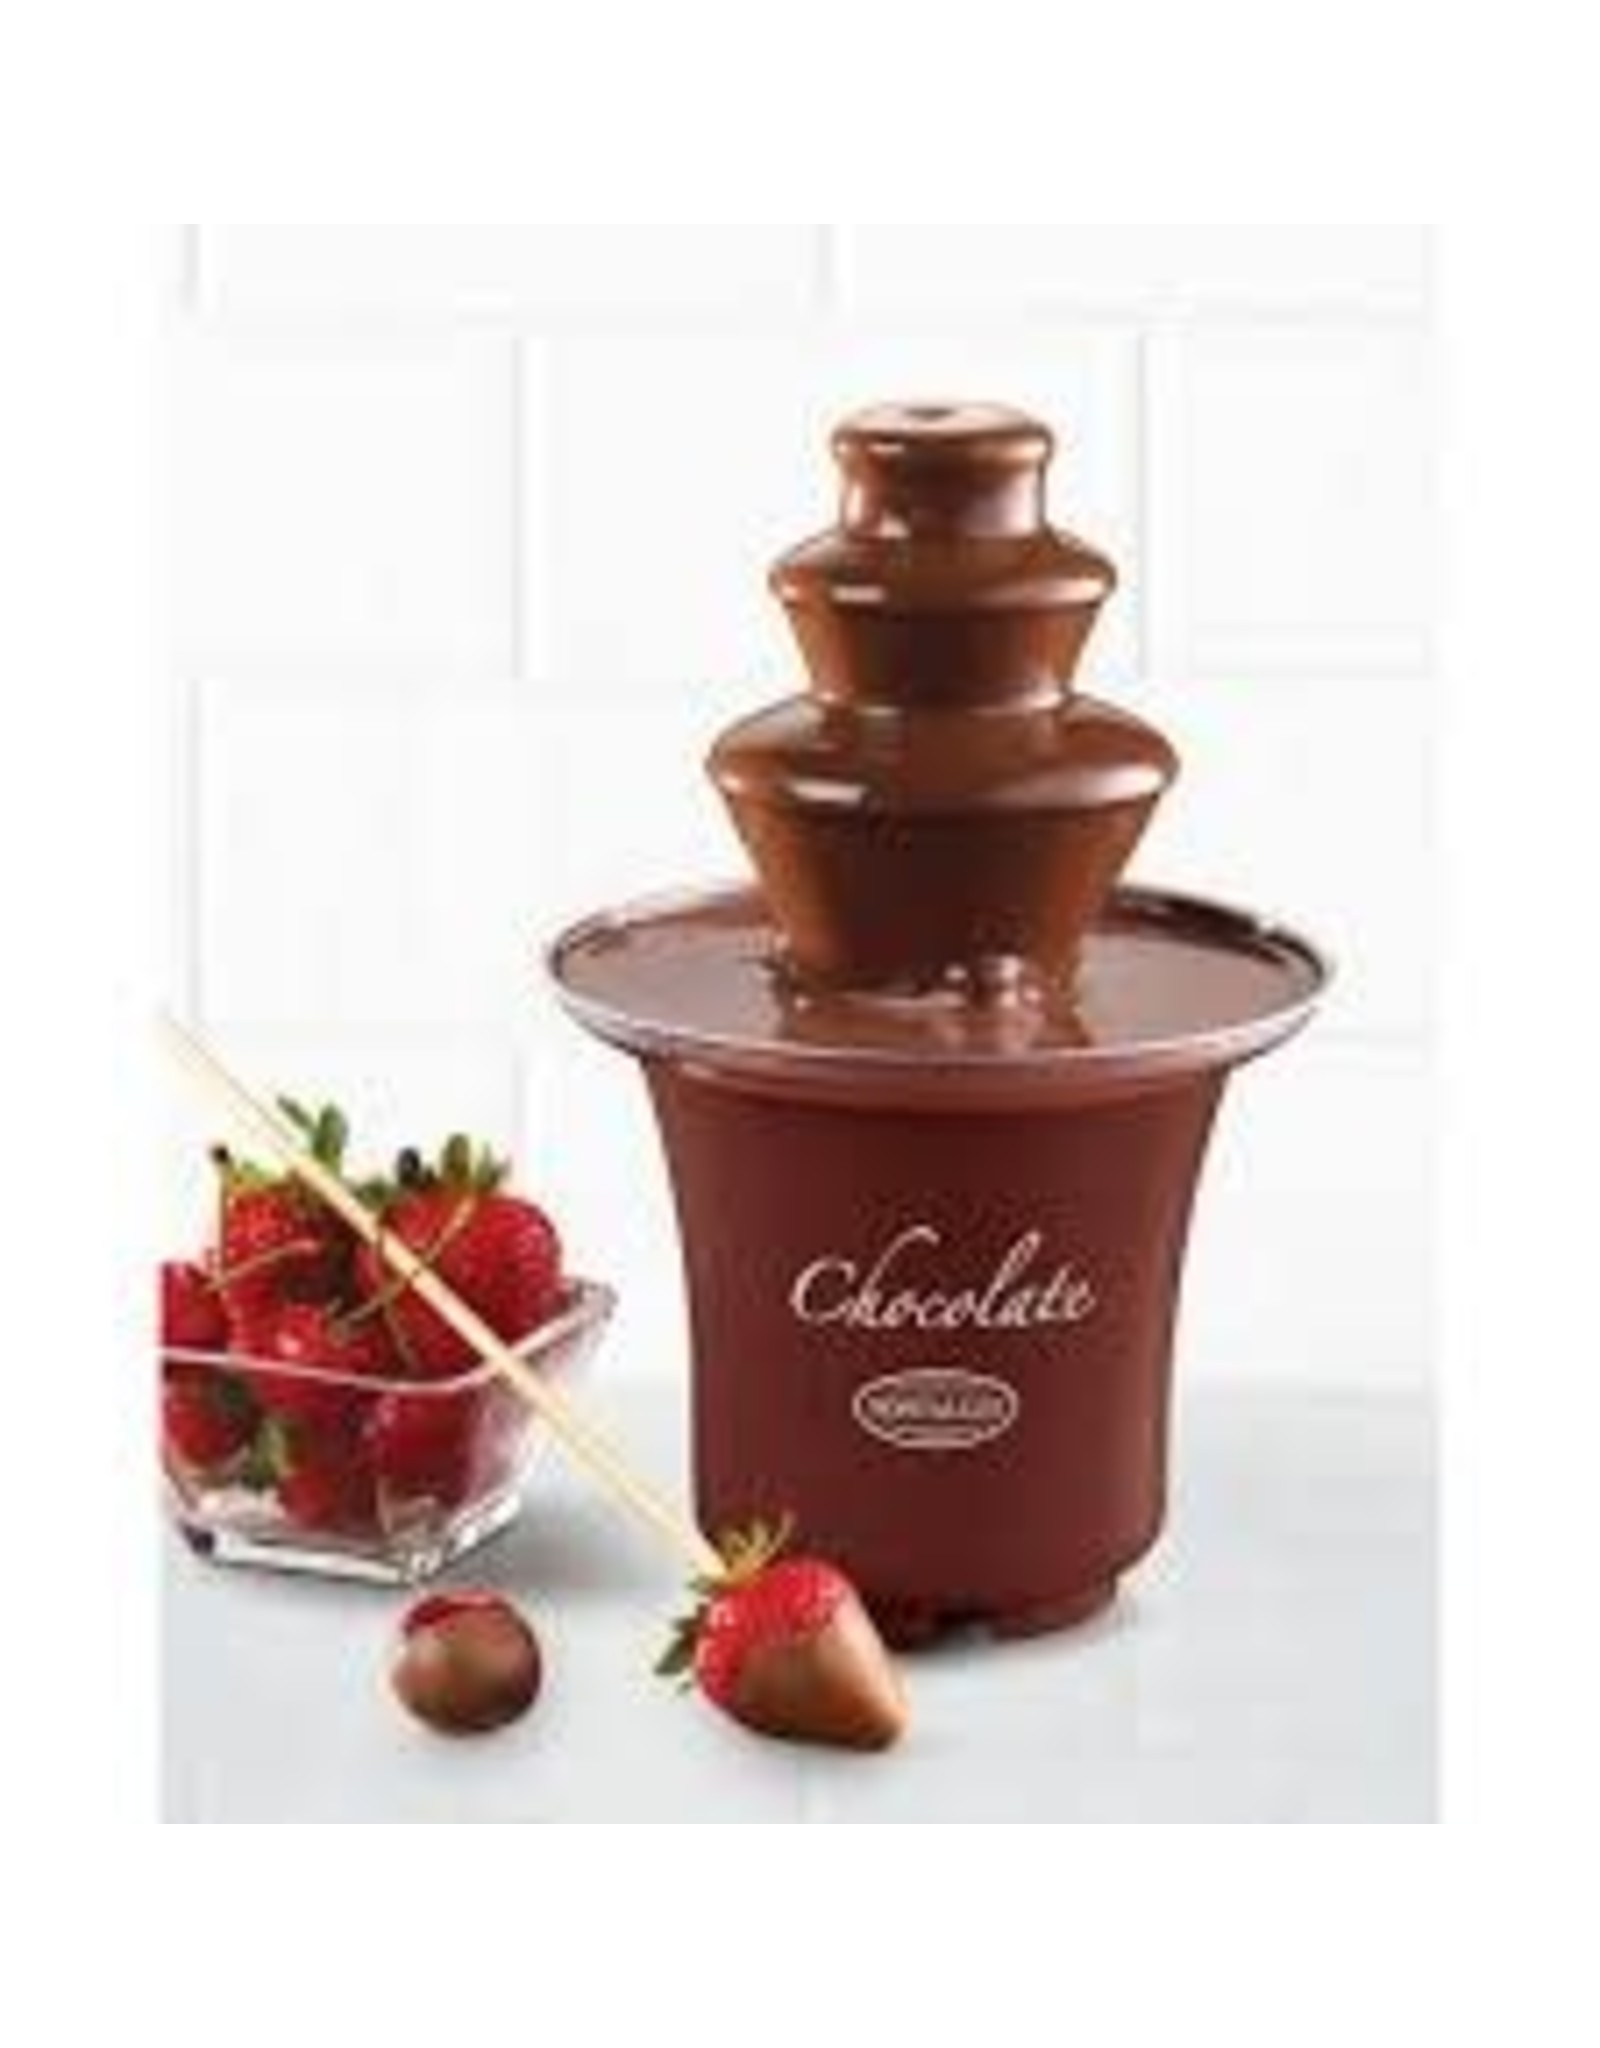 Imperial 2018 3-Tier Chocolate Fountain